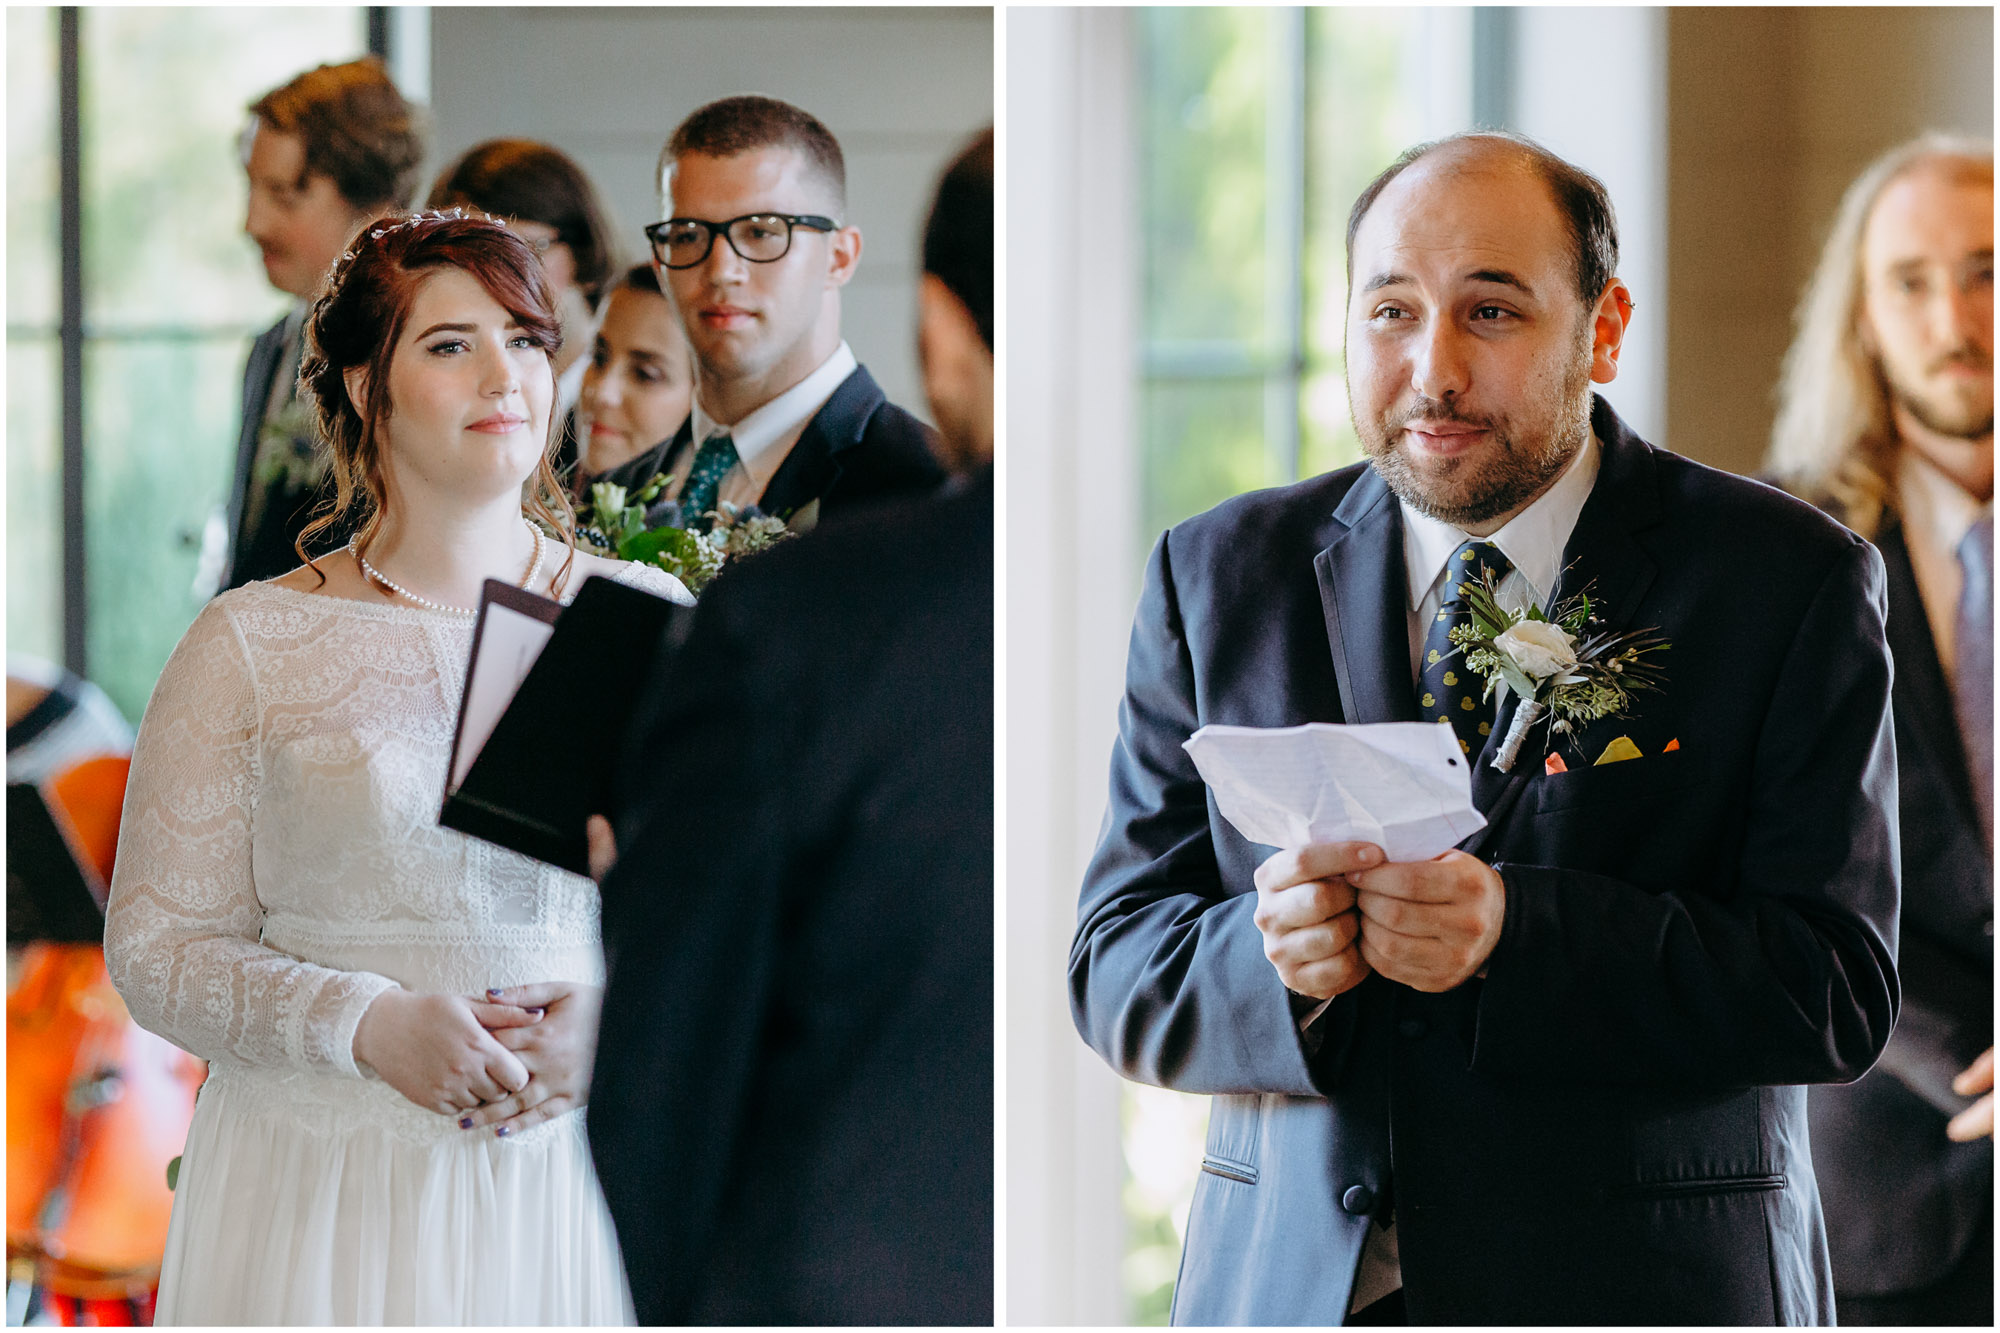 Bride and groom reading vows during ceremony - by Ashleigh Laureen Photography at LaBelle Winery in Amherst, New Hampshire